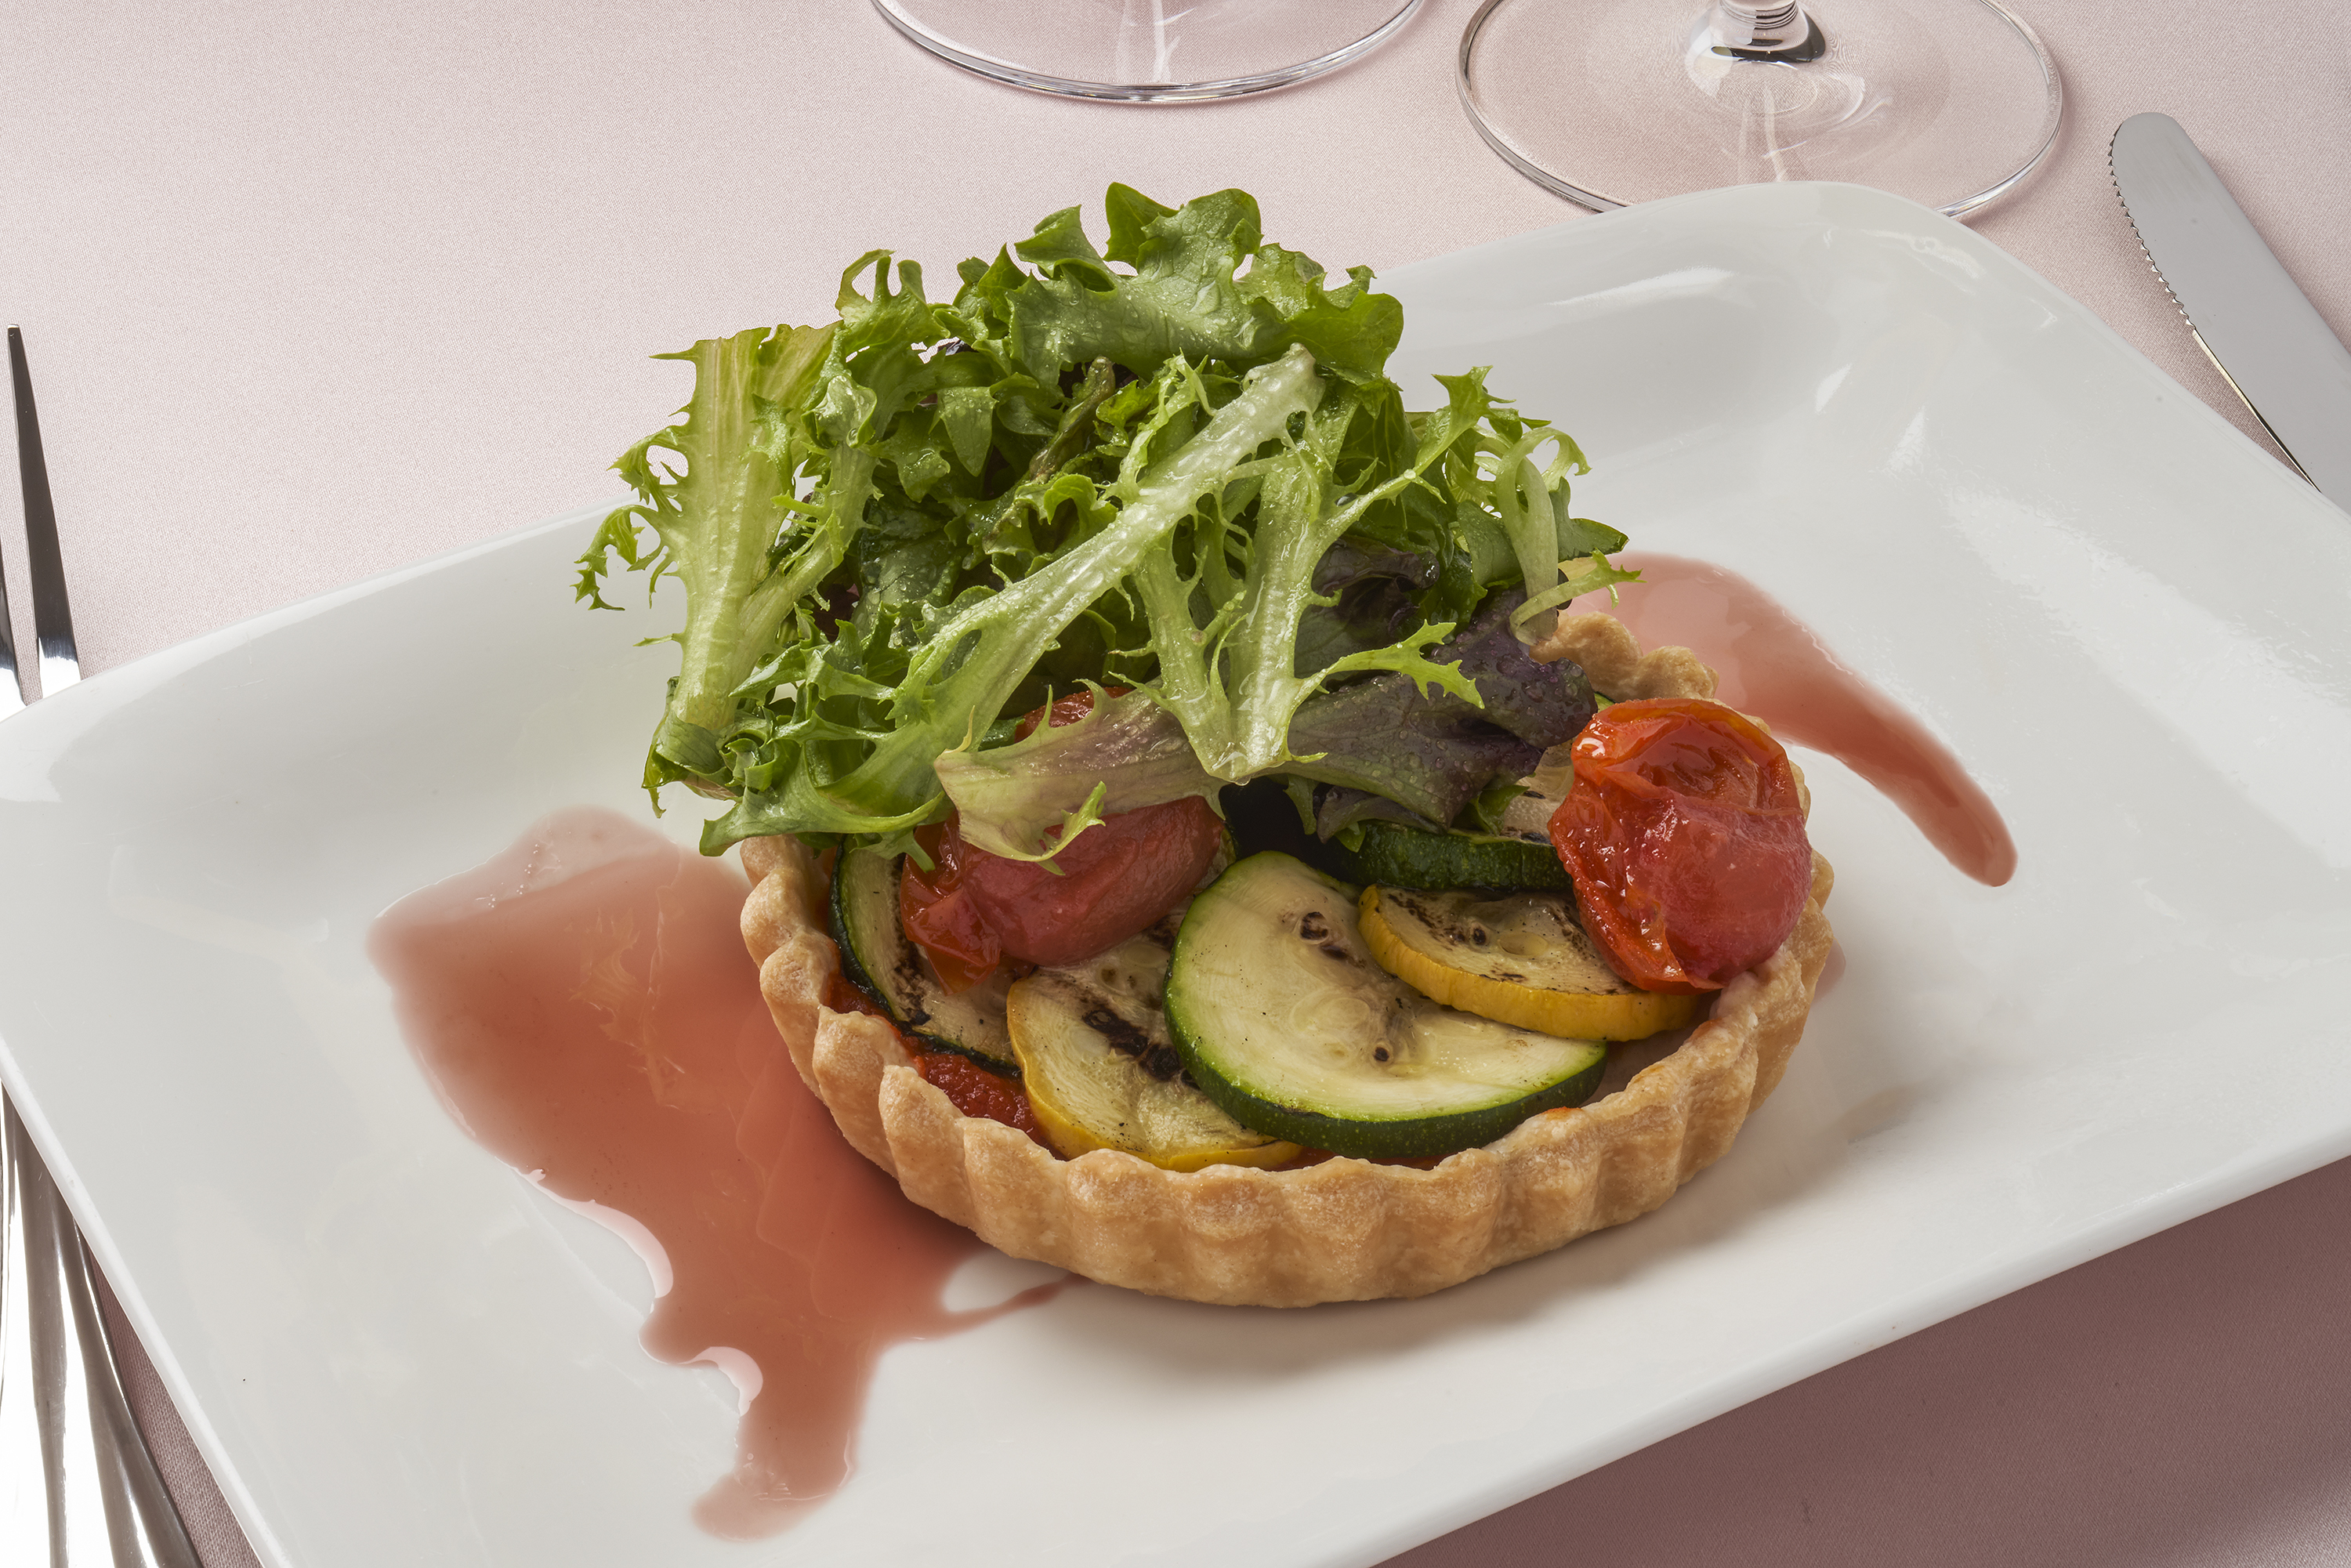 Vegetable Tart with Salad